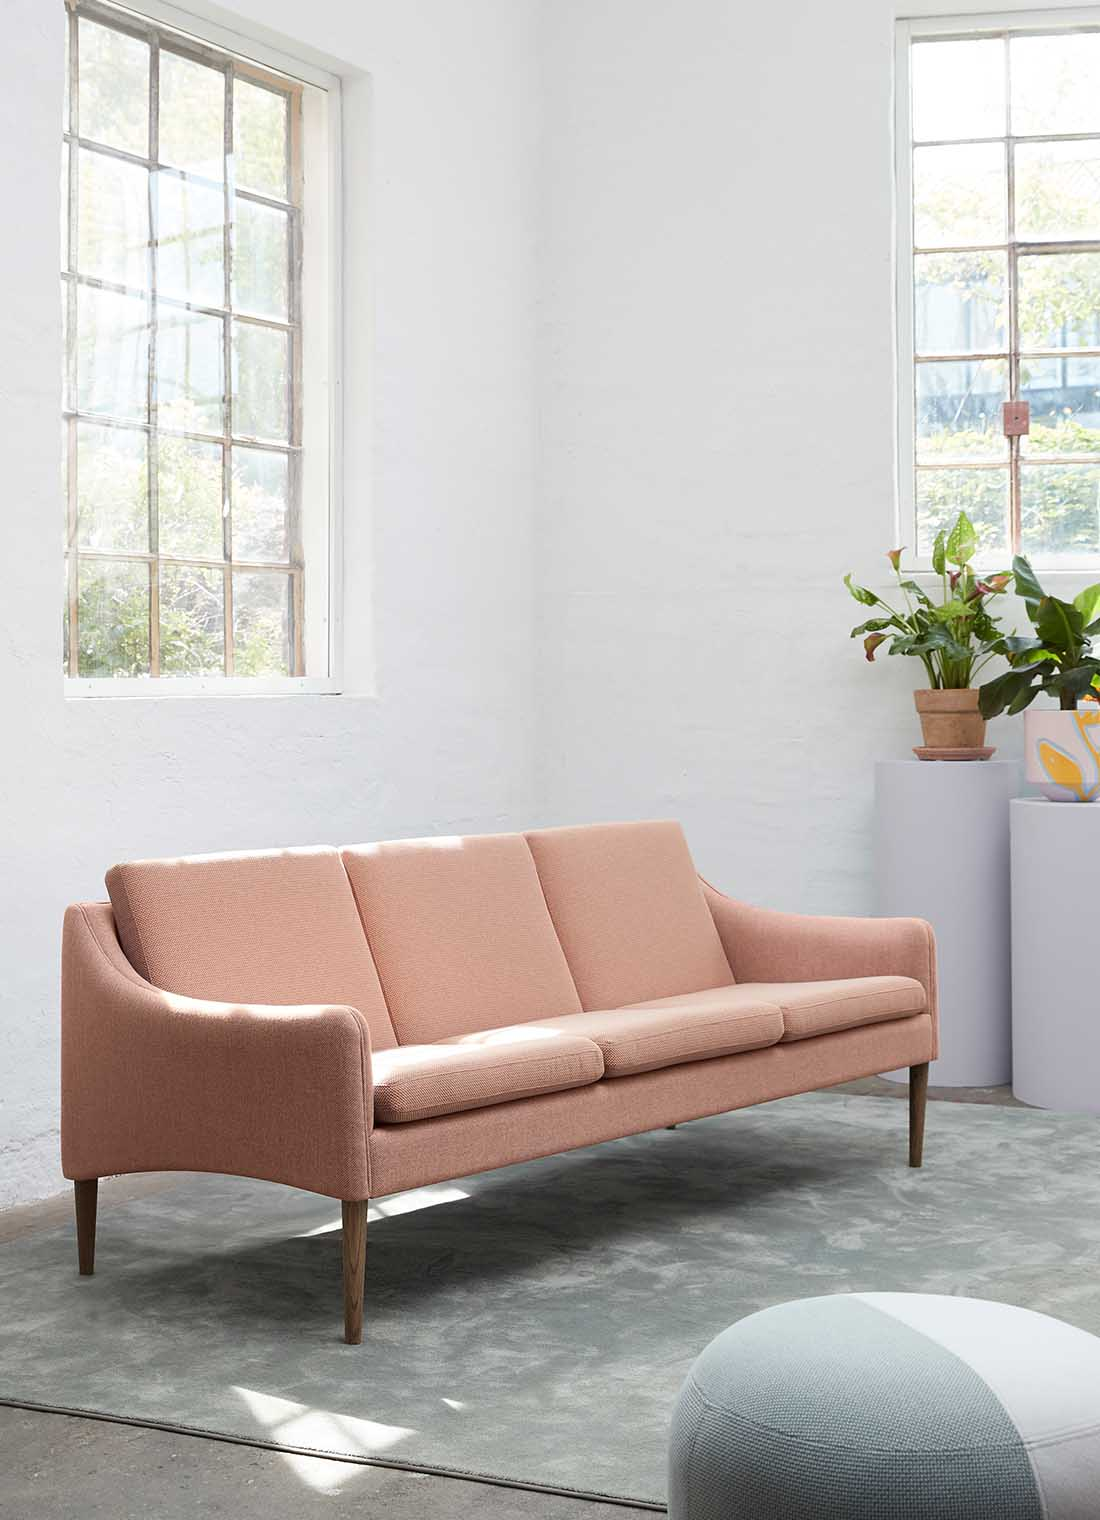 Mr. Olsen sofa in fresh peach sustainable fabric.